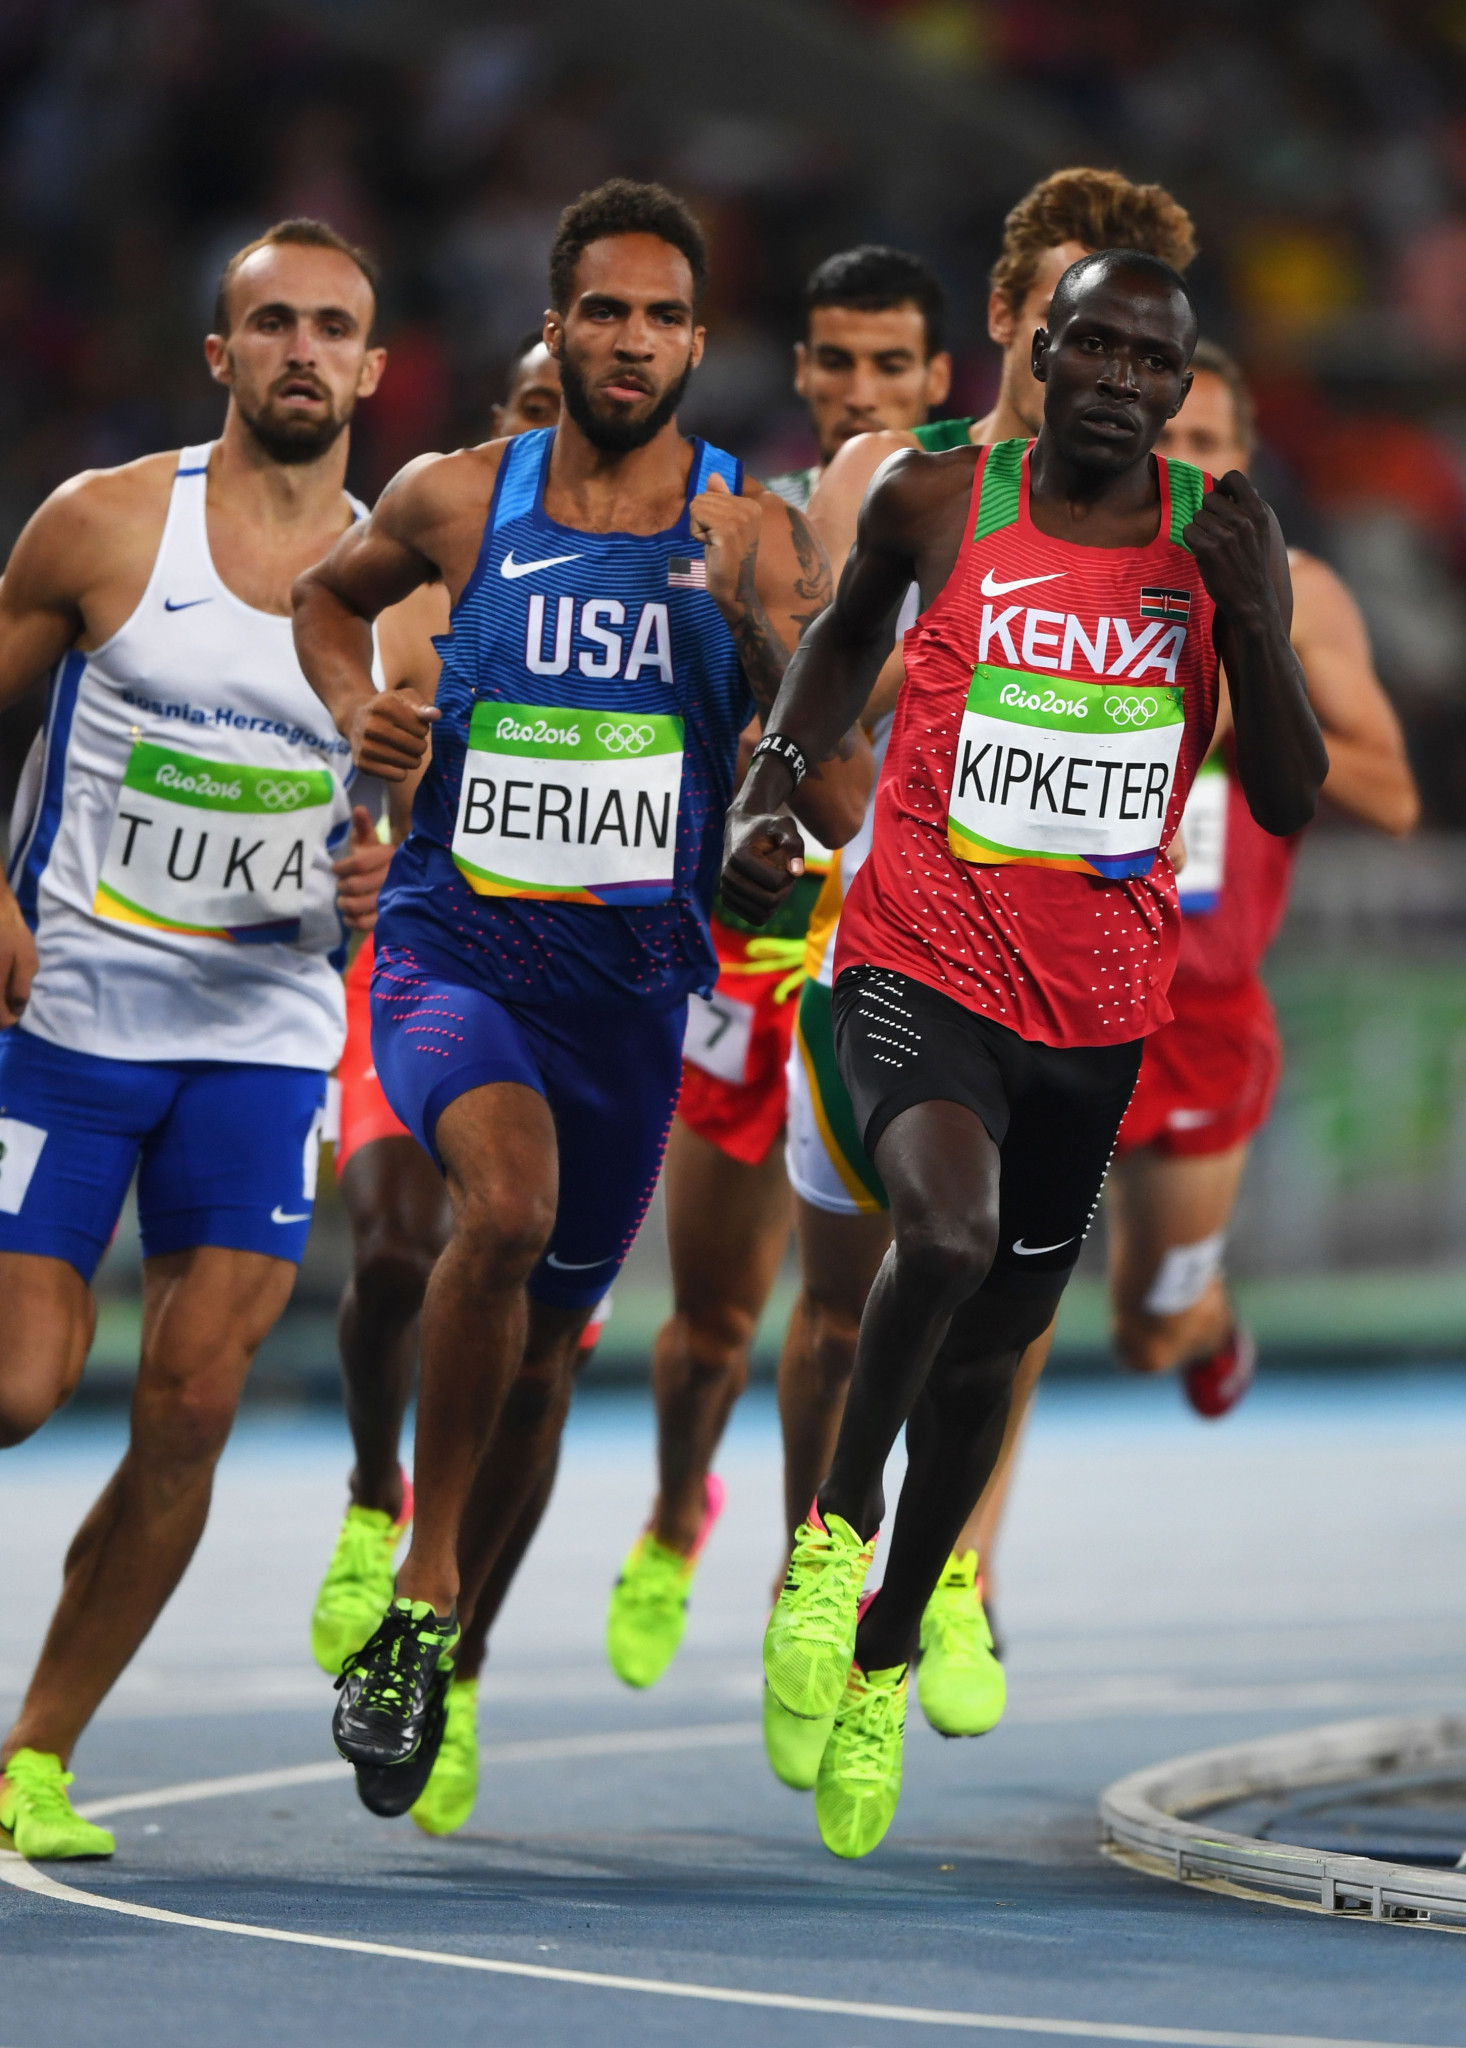 Former world junior 800m champion joins list of suspended Kenyans